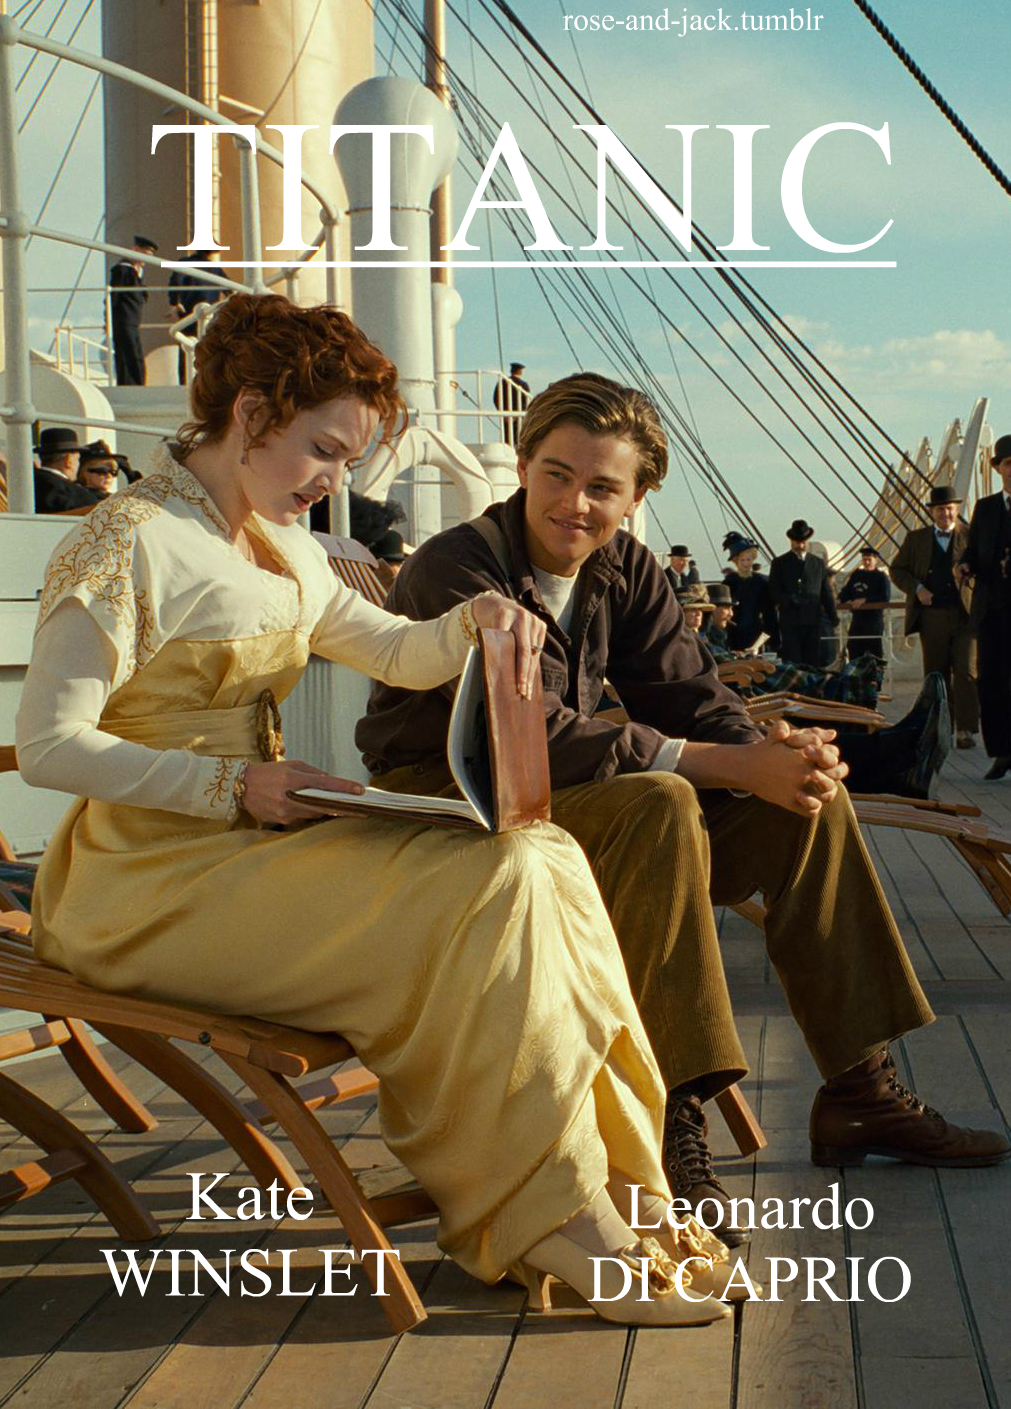 Titanic (http://rose-and-jack.tumblr.com) My Titanic poster